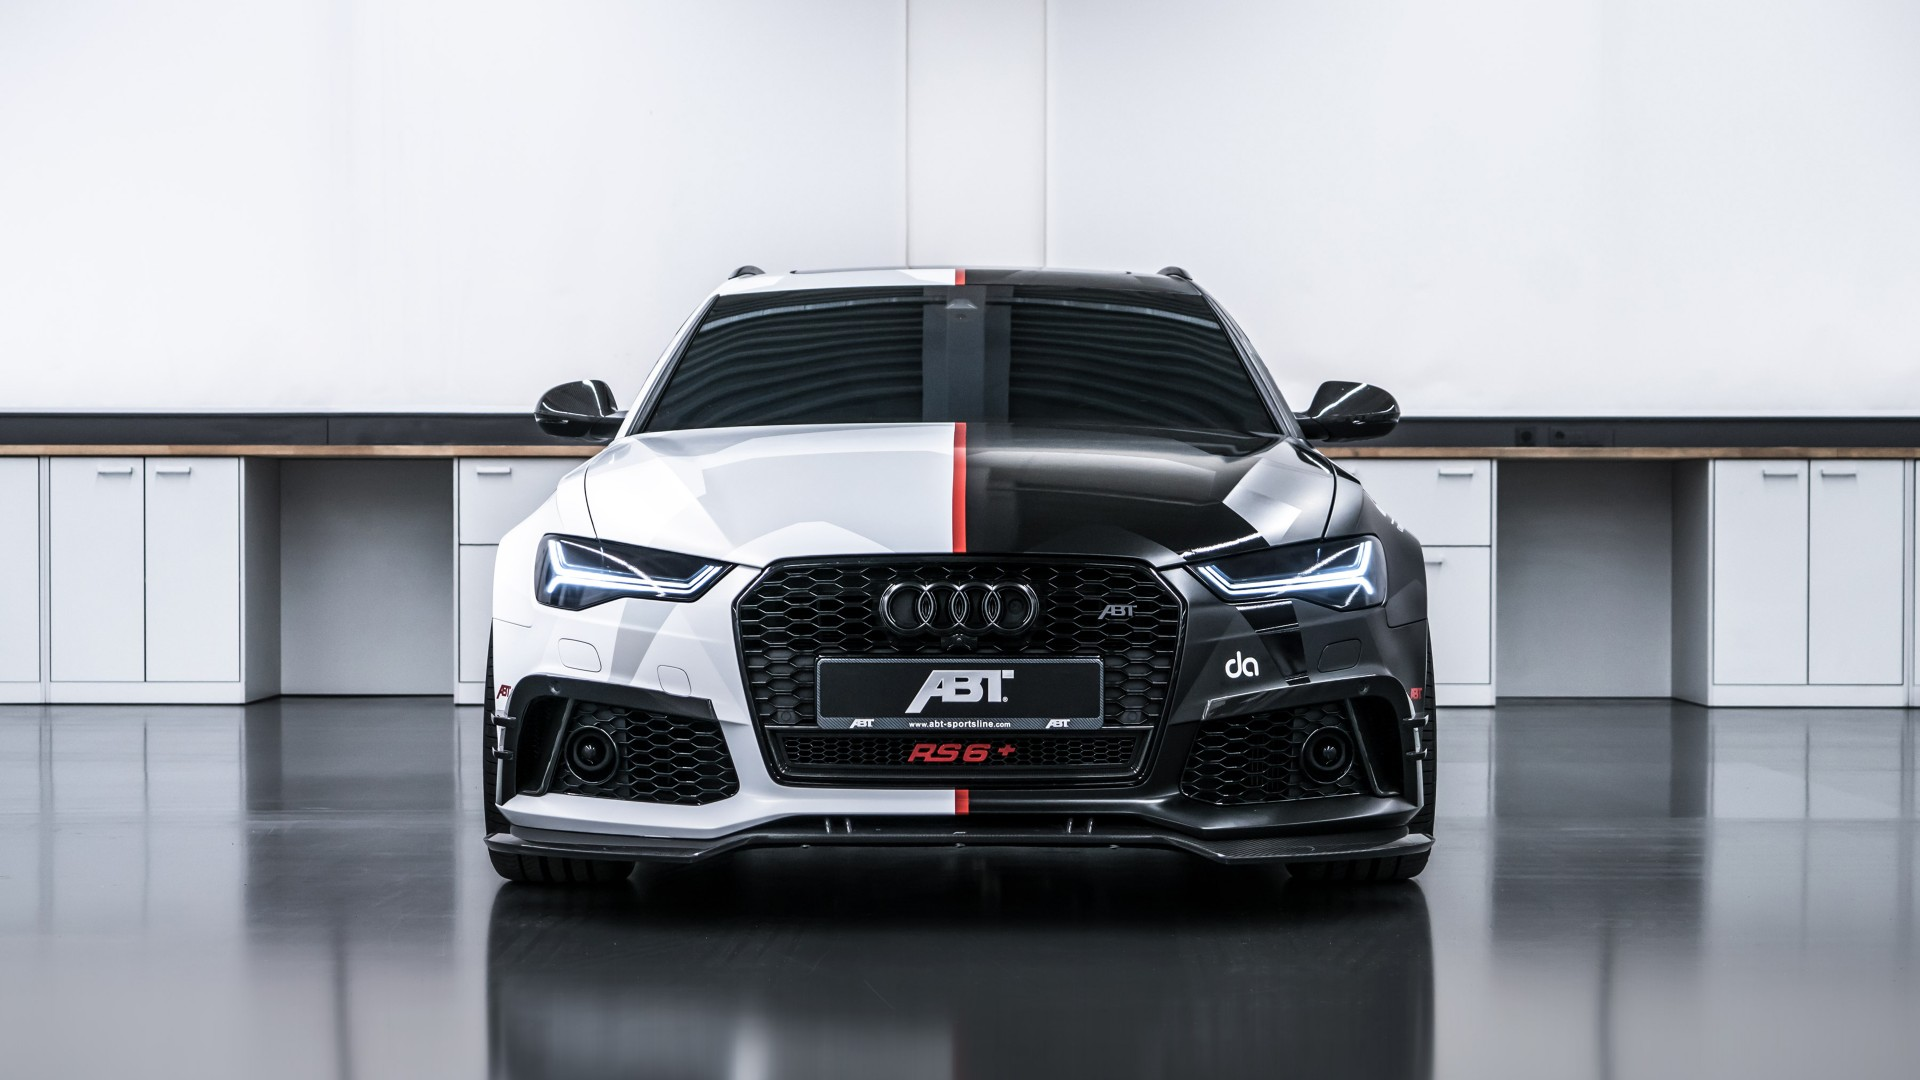 2018 Abt Audi Rs6 Avant For Jon Olsson 4k 3 Wallpaper Hd